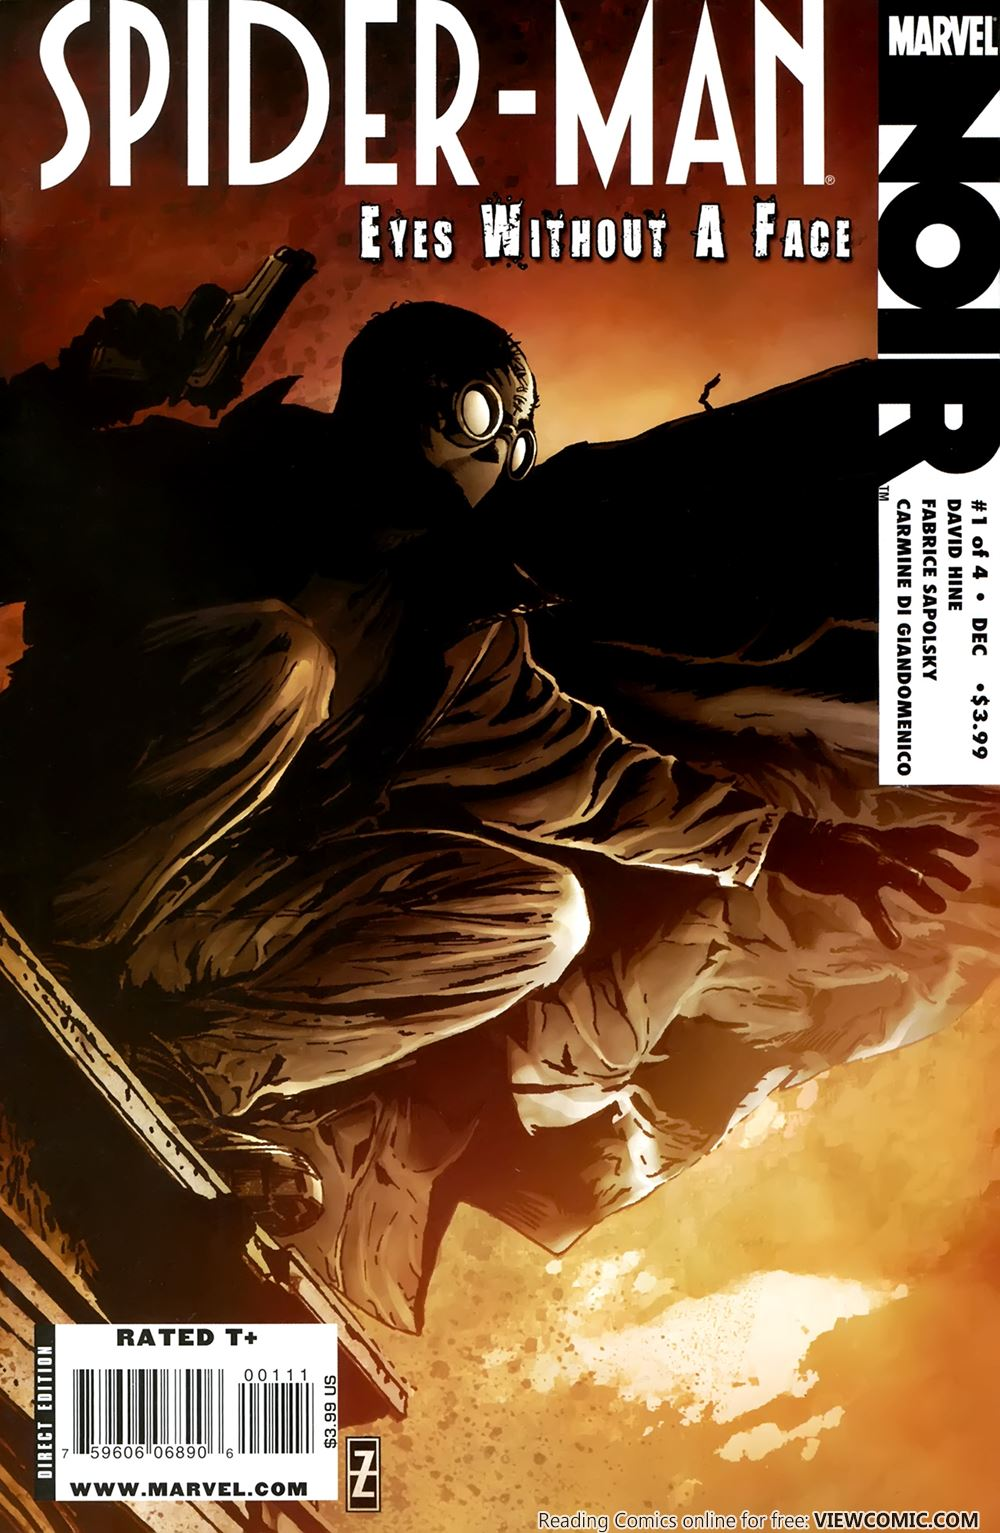 spider-man noir – eyes without a face 01 | reading comics online for